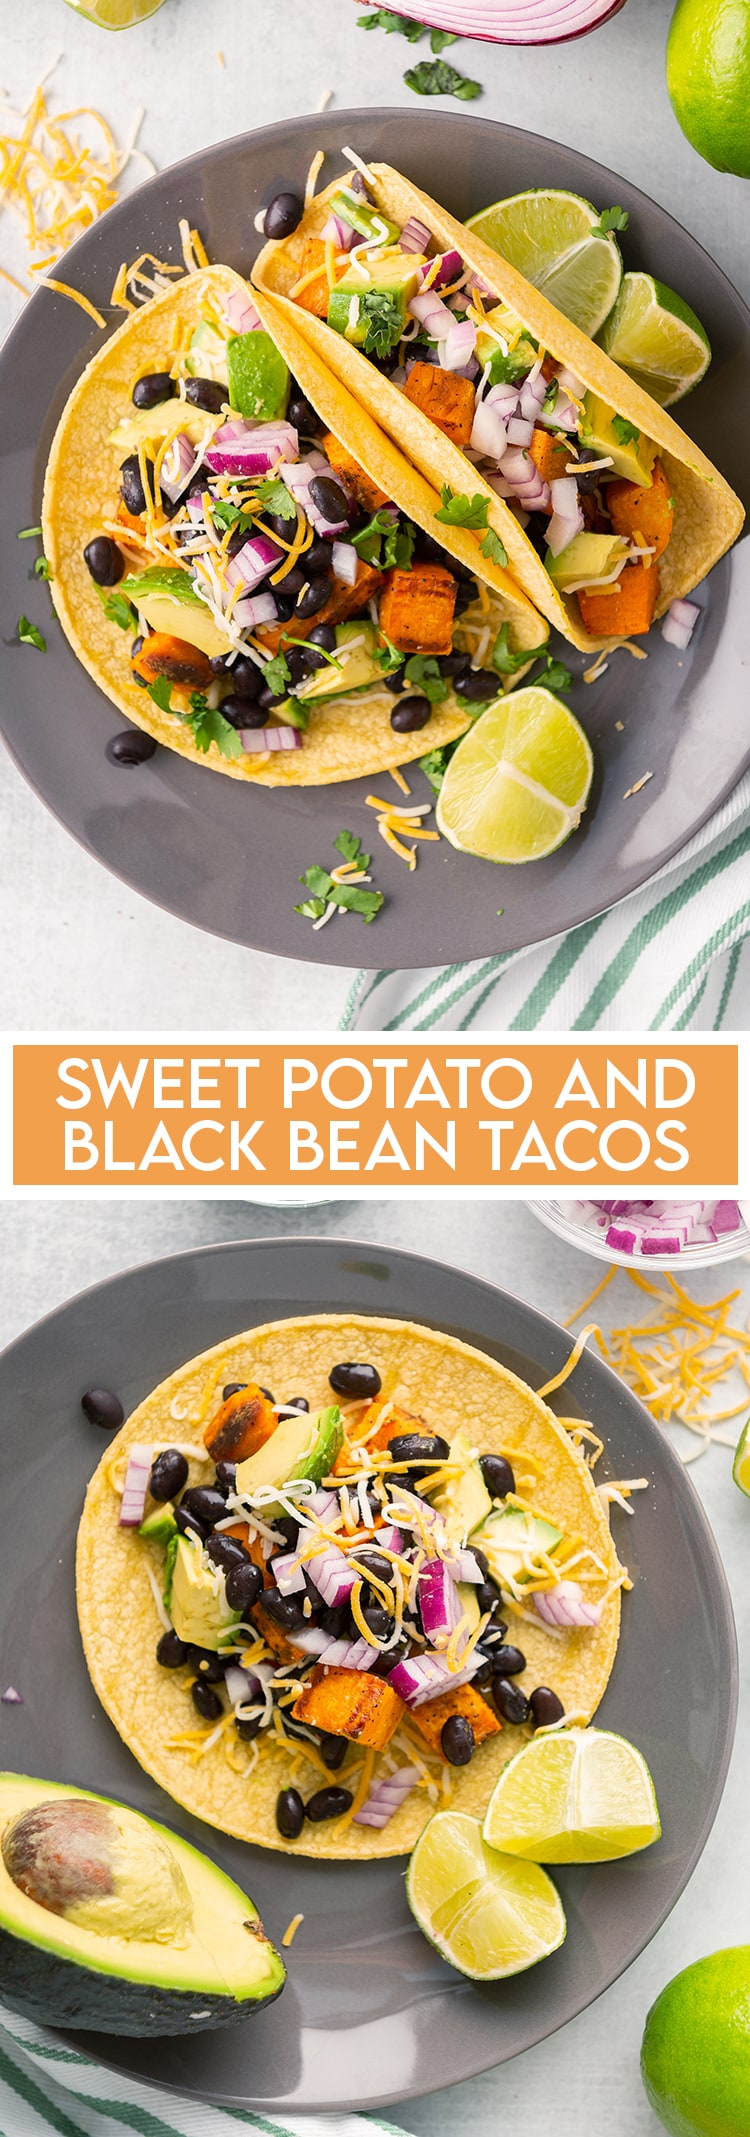 A collage of two photos of sweet potato black bean tacos on corn tortillas with avocado, cilantro and red onion with text overlay for pinterest.